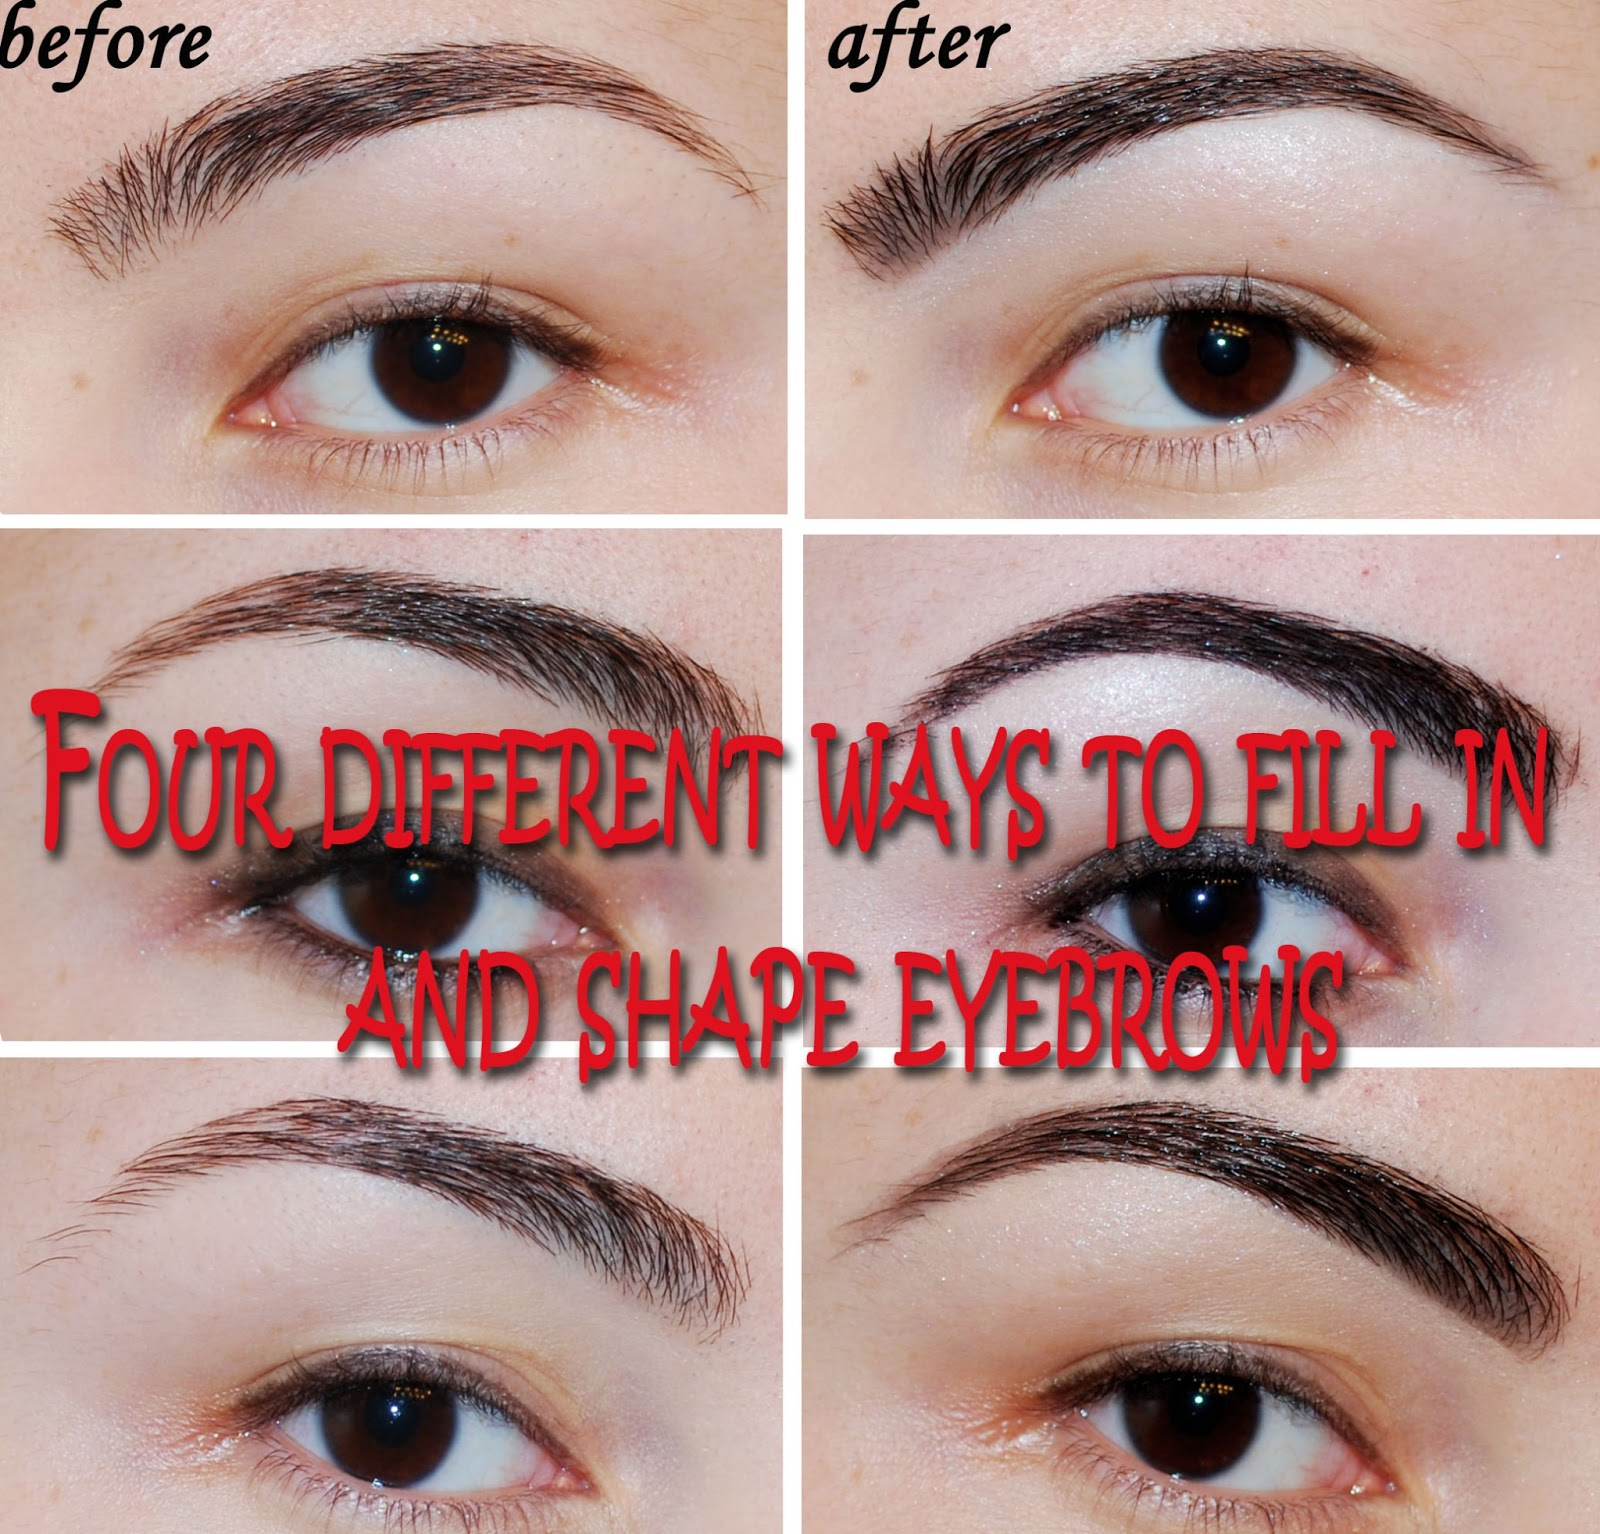 Use A Brow Pencil To Fill In Your Brows Before You Pluck So Don T Overdo It